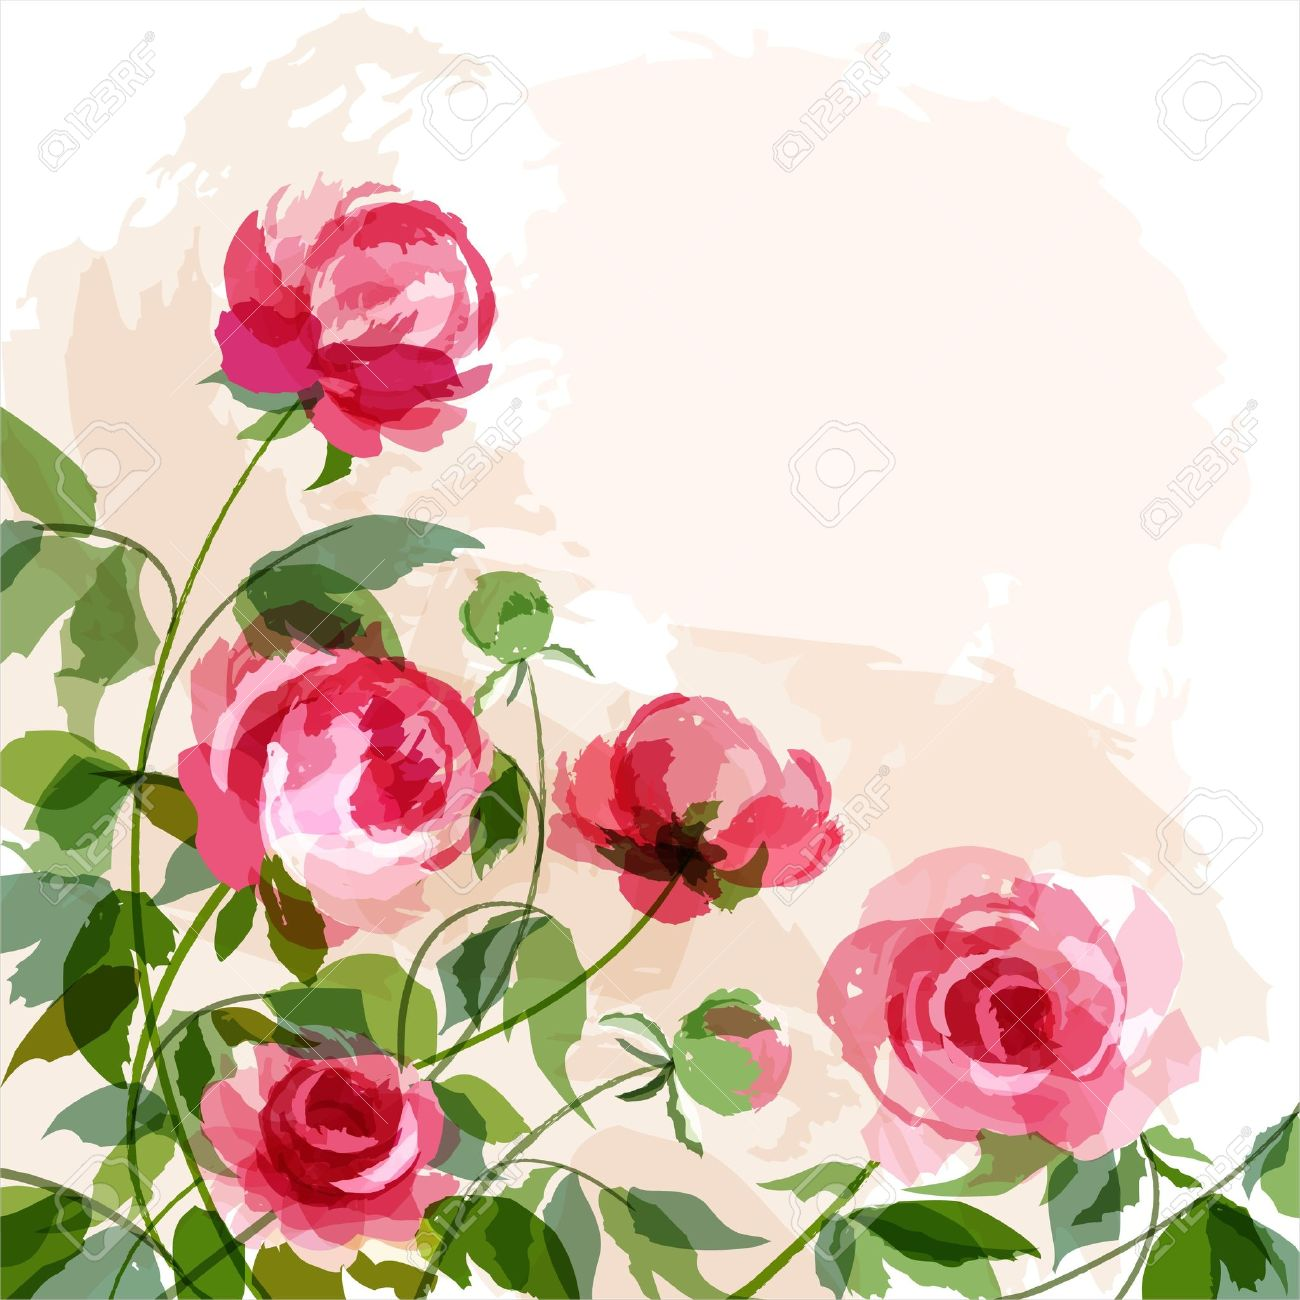 Romantic background with peonies. Stock Vector - 9519069